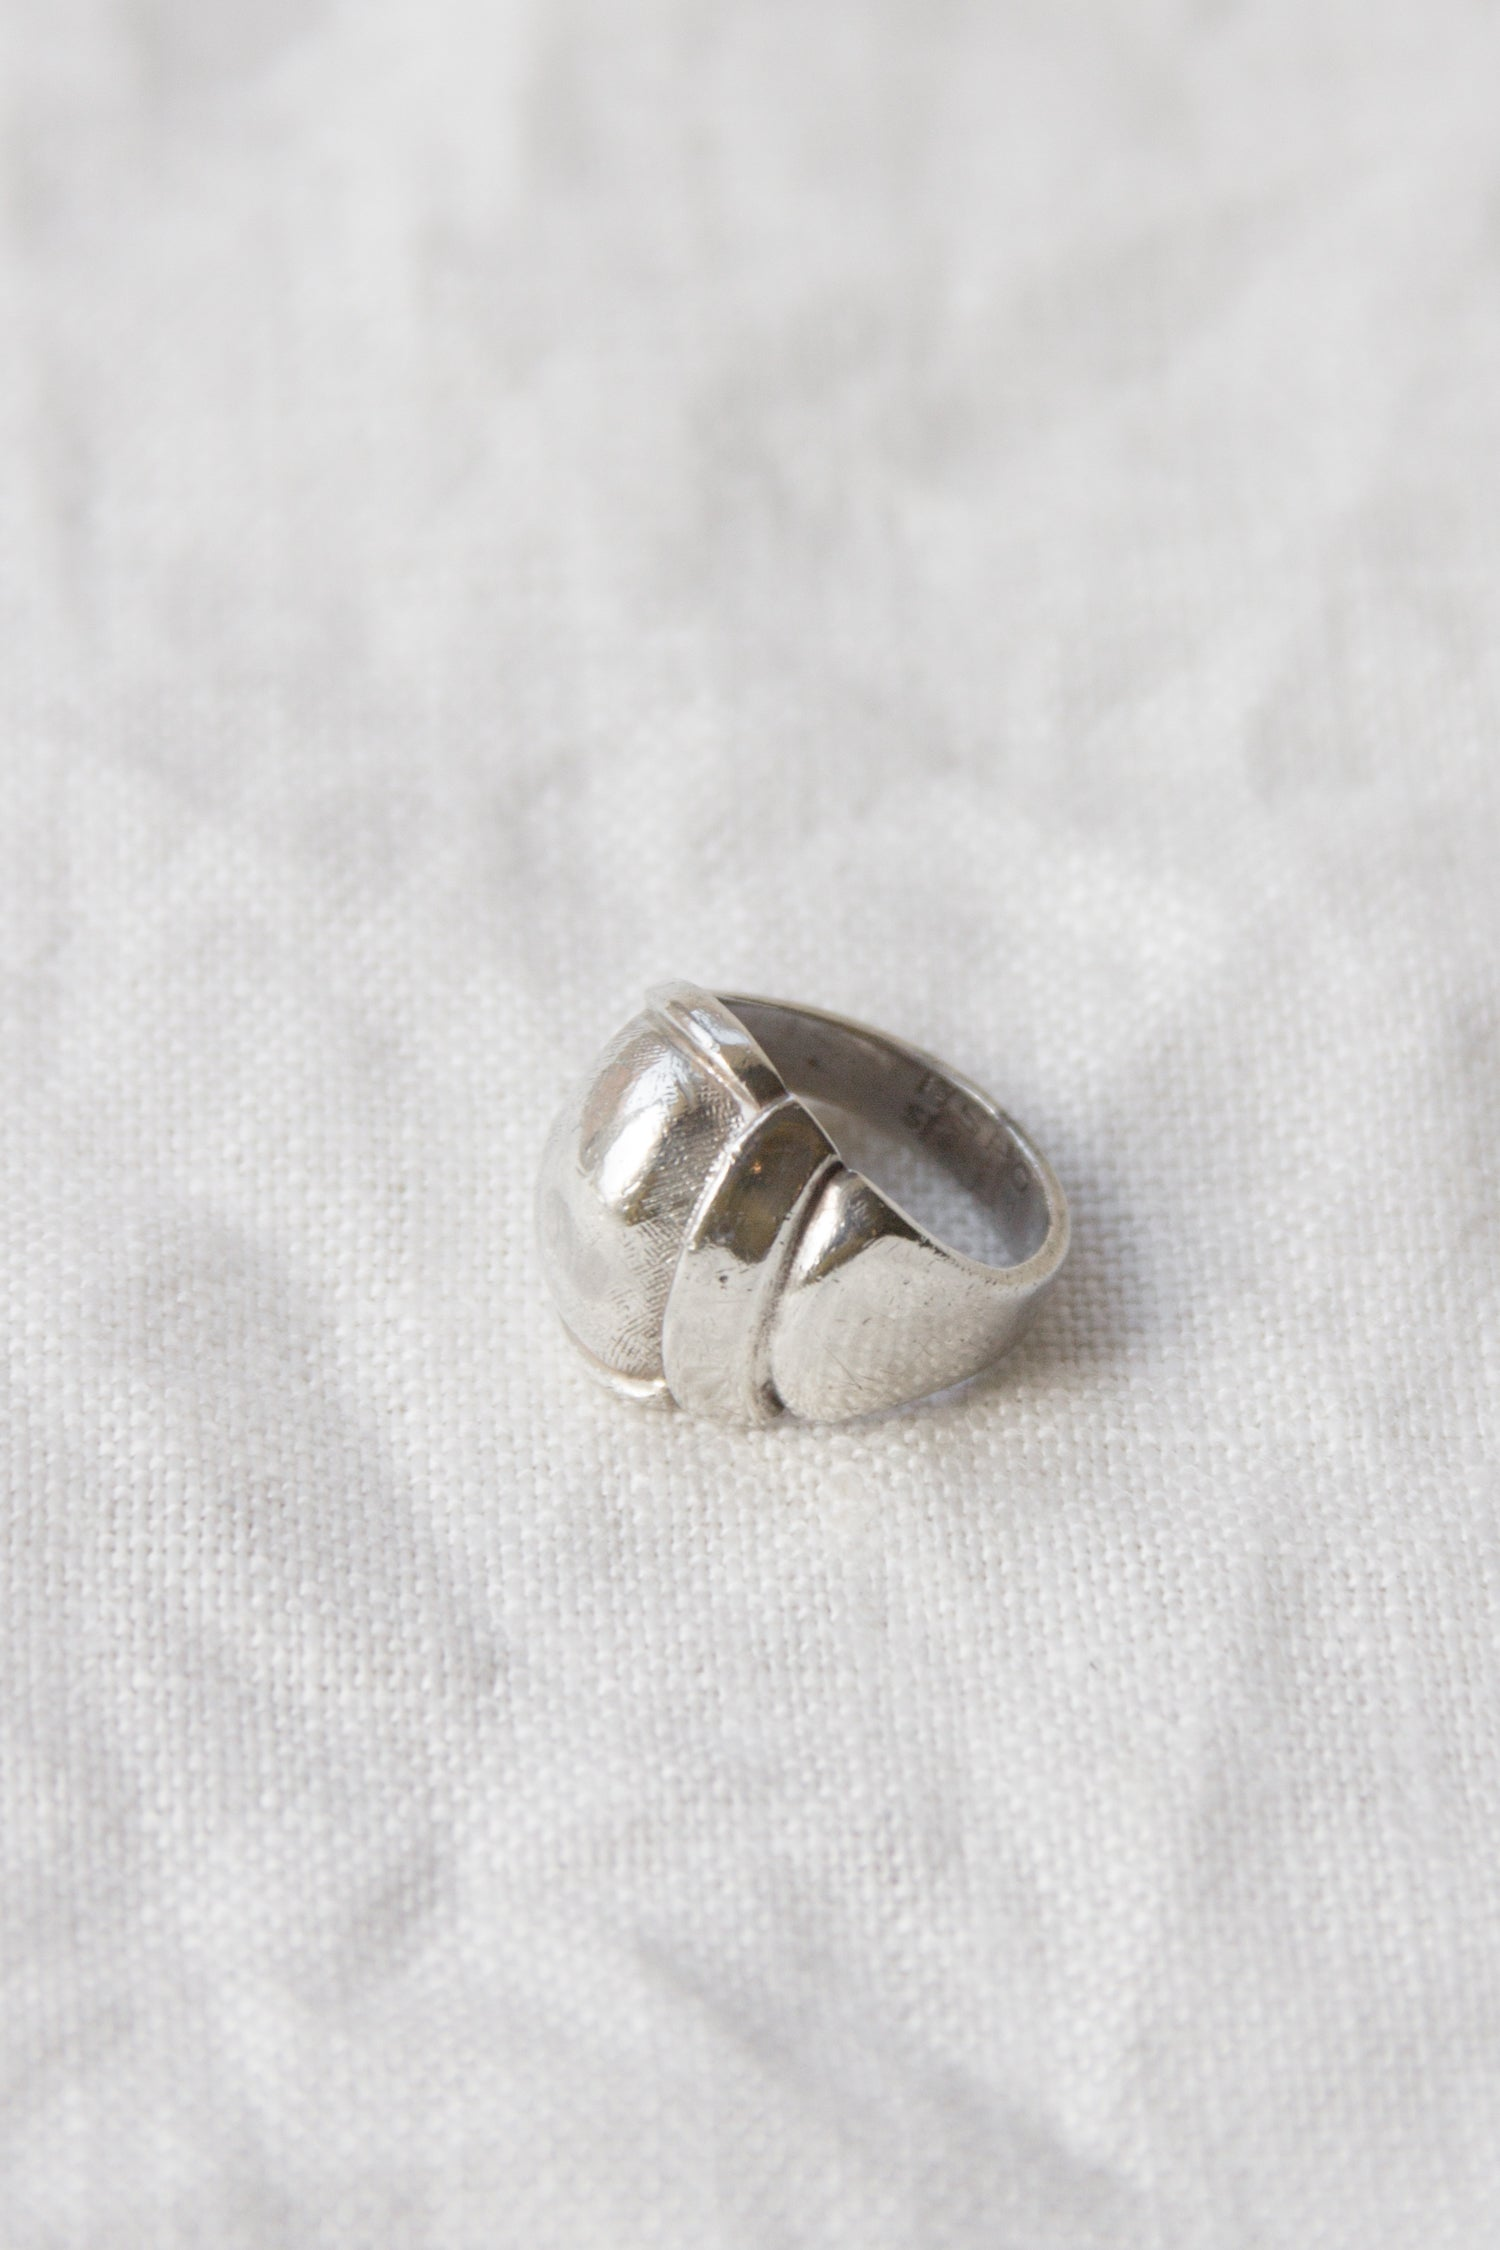 Vintage Bulbous Sterling Ring